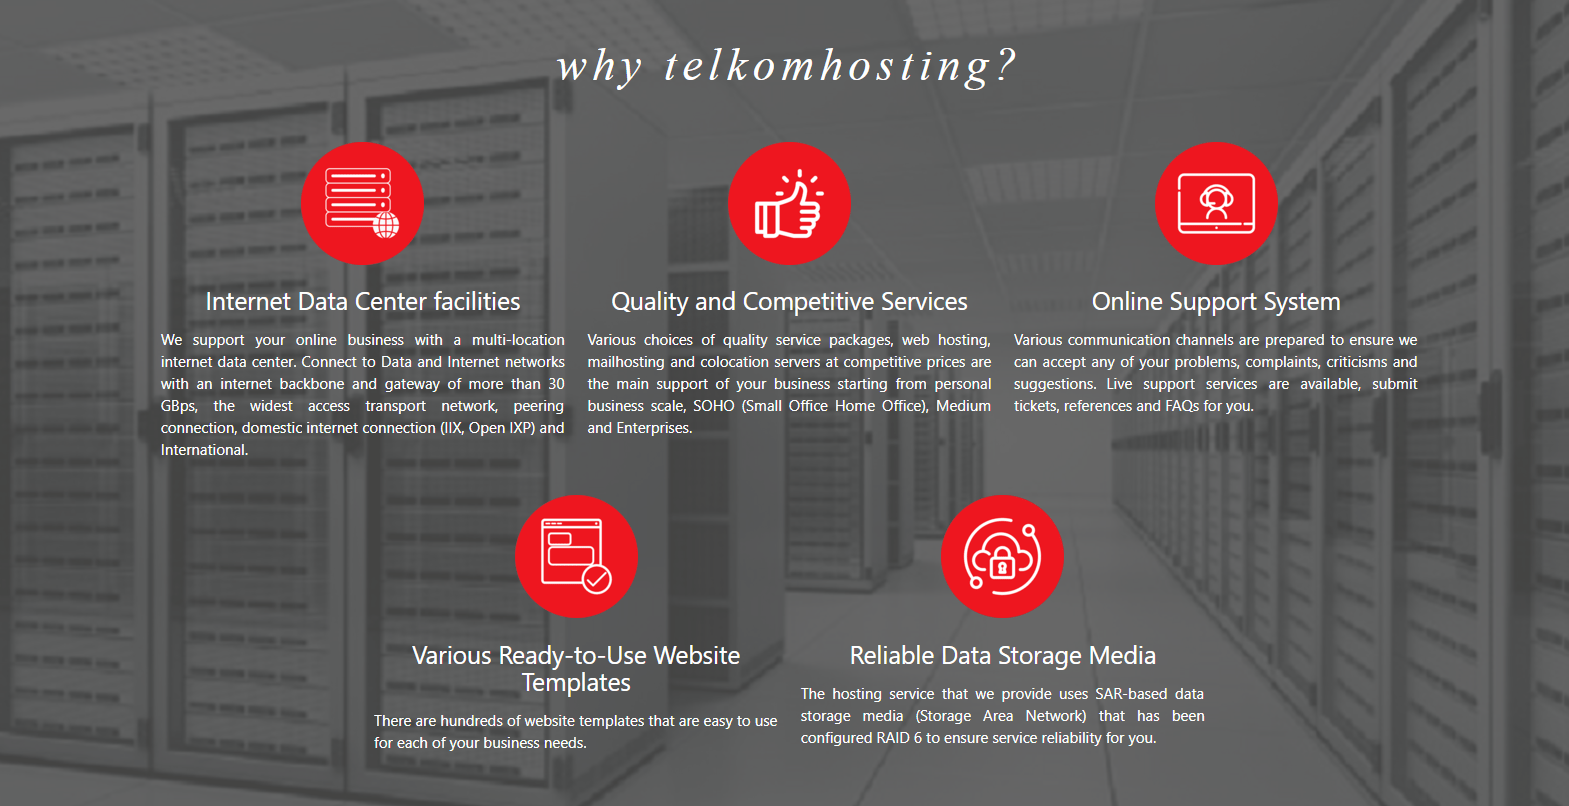 Telkomhosting-overview1